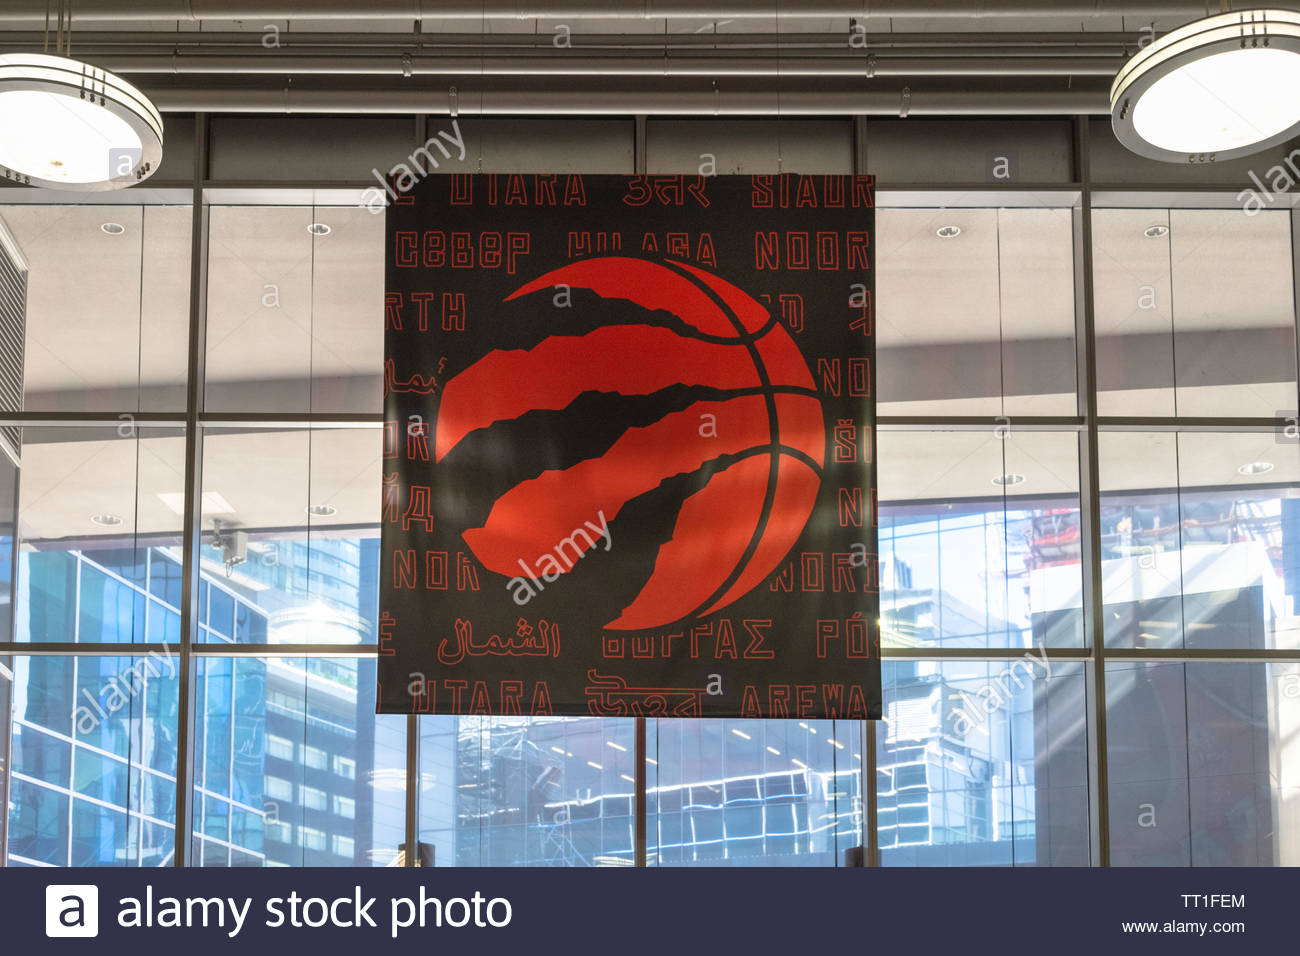 canada decorations as the raptors basketball team is playing the nba playoffs for the first time in history TT1FEM